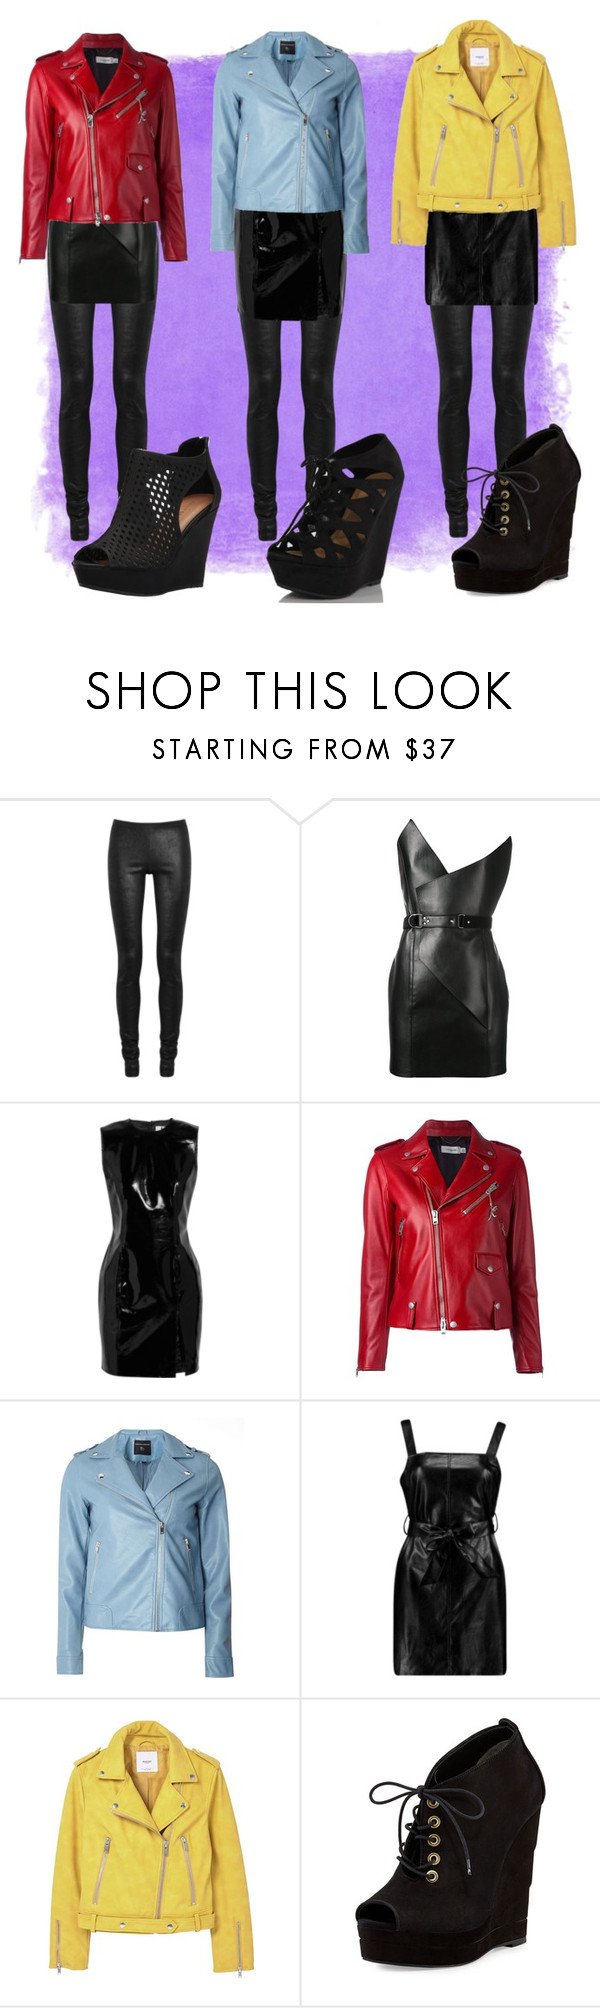 """Can't nobody hold us down"" by asaramarcelino ❤ liked on Polyvore featuring Rick Owens, Yves Saint Laurent, Topshop Unique, Coach, Dorothy Perkins, Boohoo, MANGO, Diane Von Furstenberg, Chinese Laundry and squadgoals"